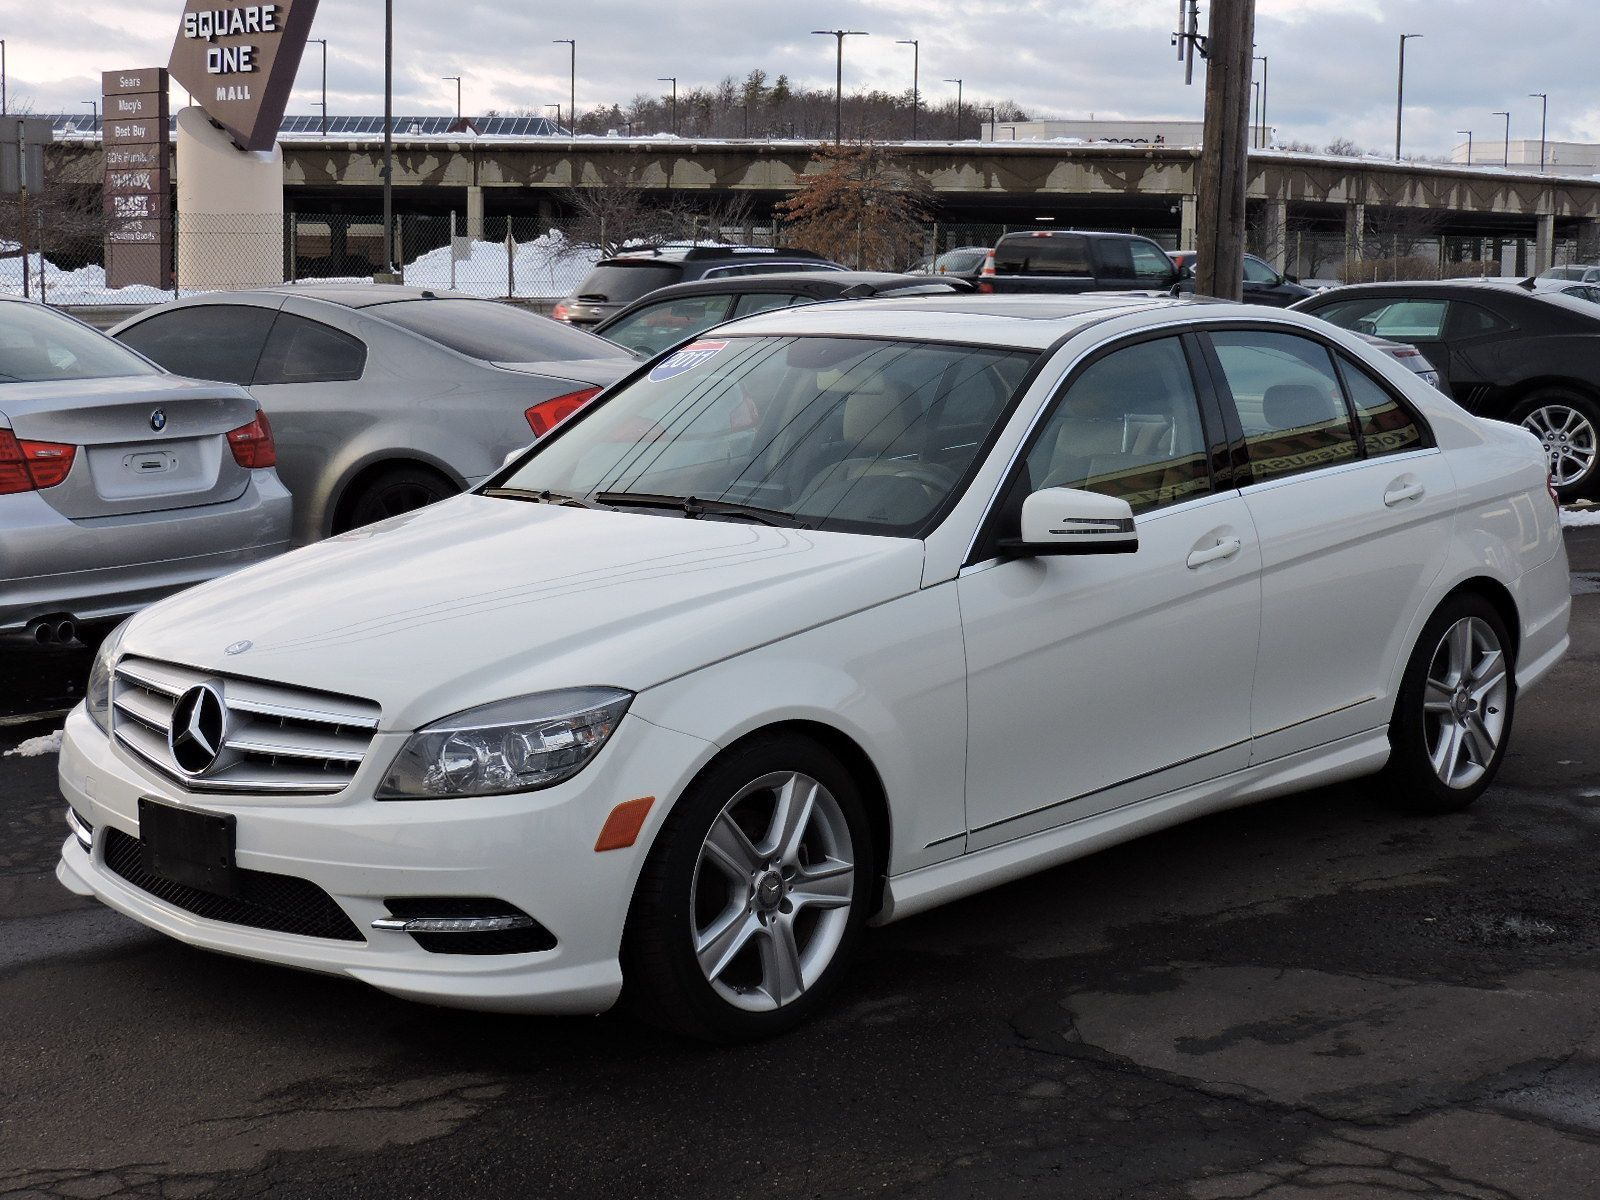 2011 mercedes benz c300 manual sedan luxury vehicle model